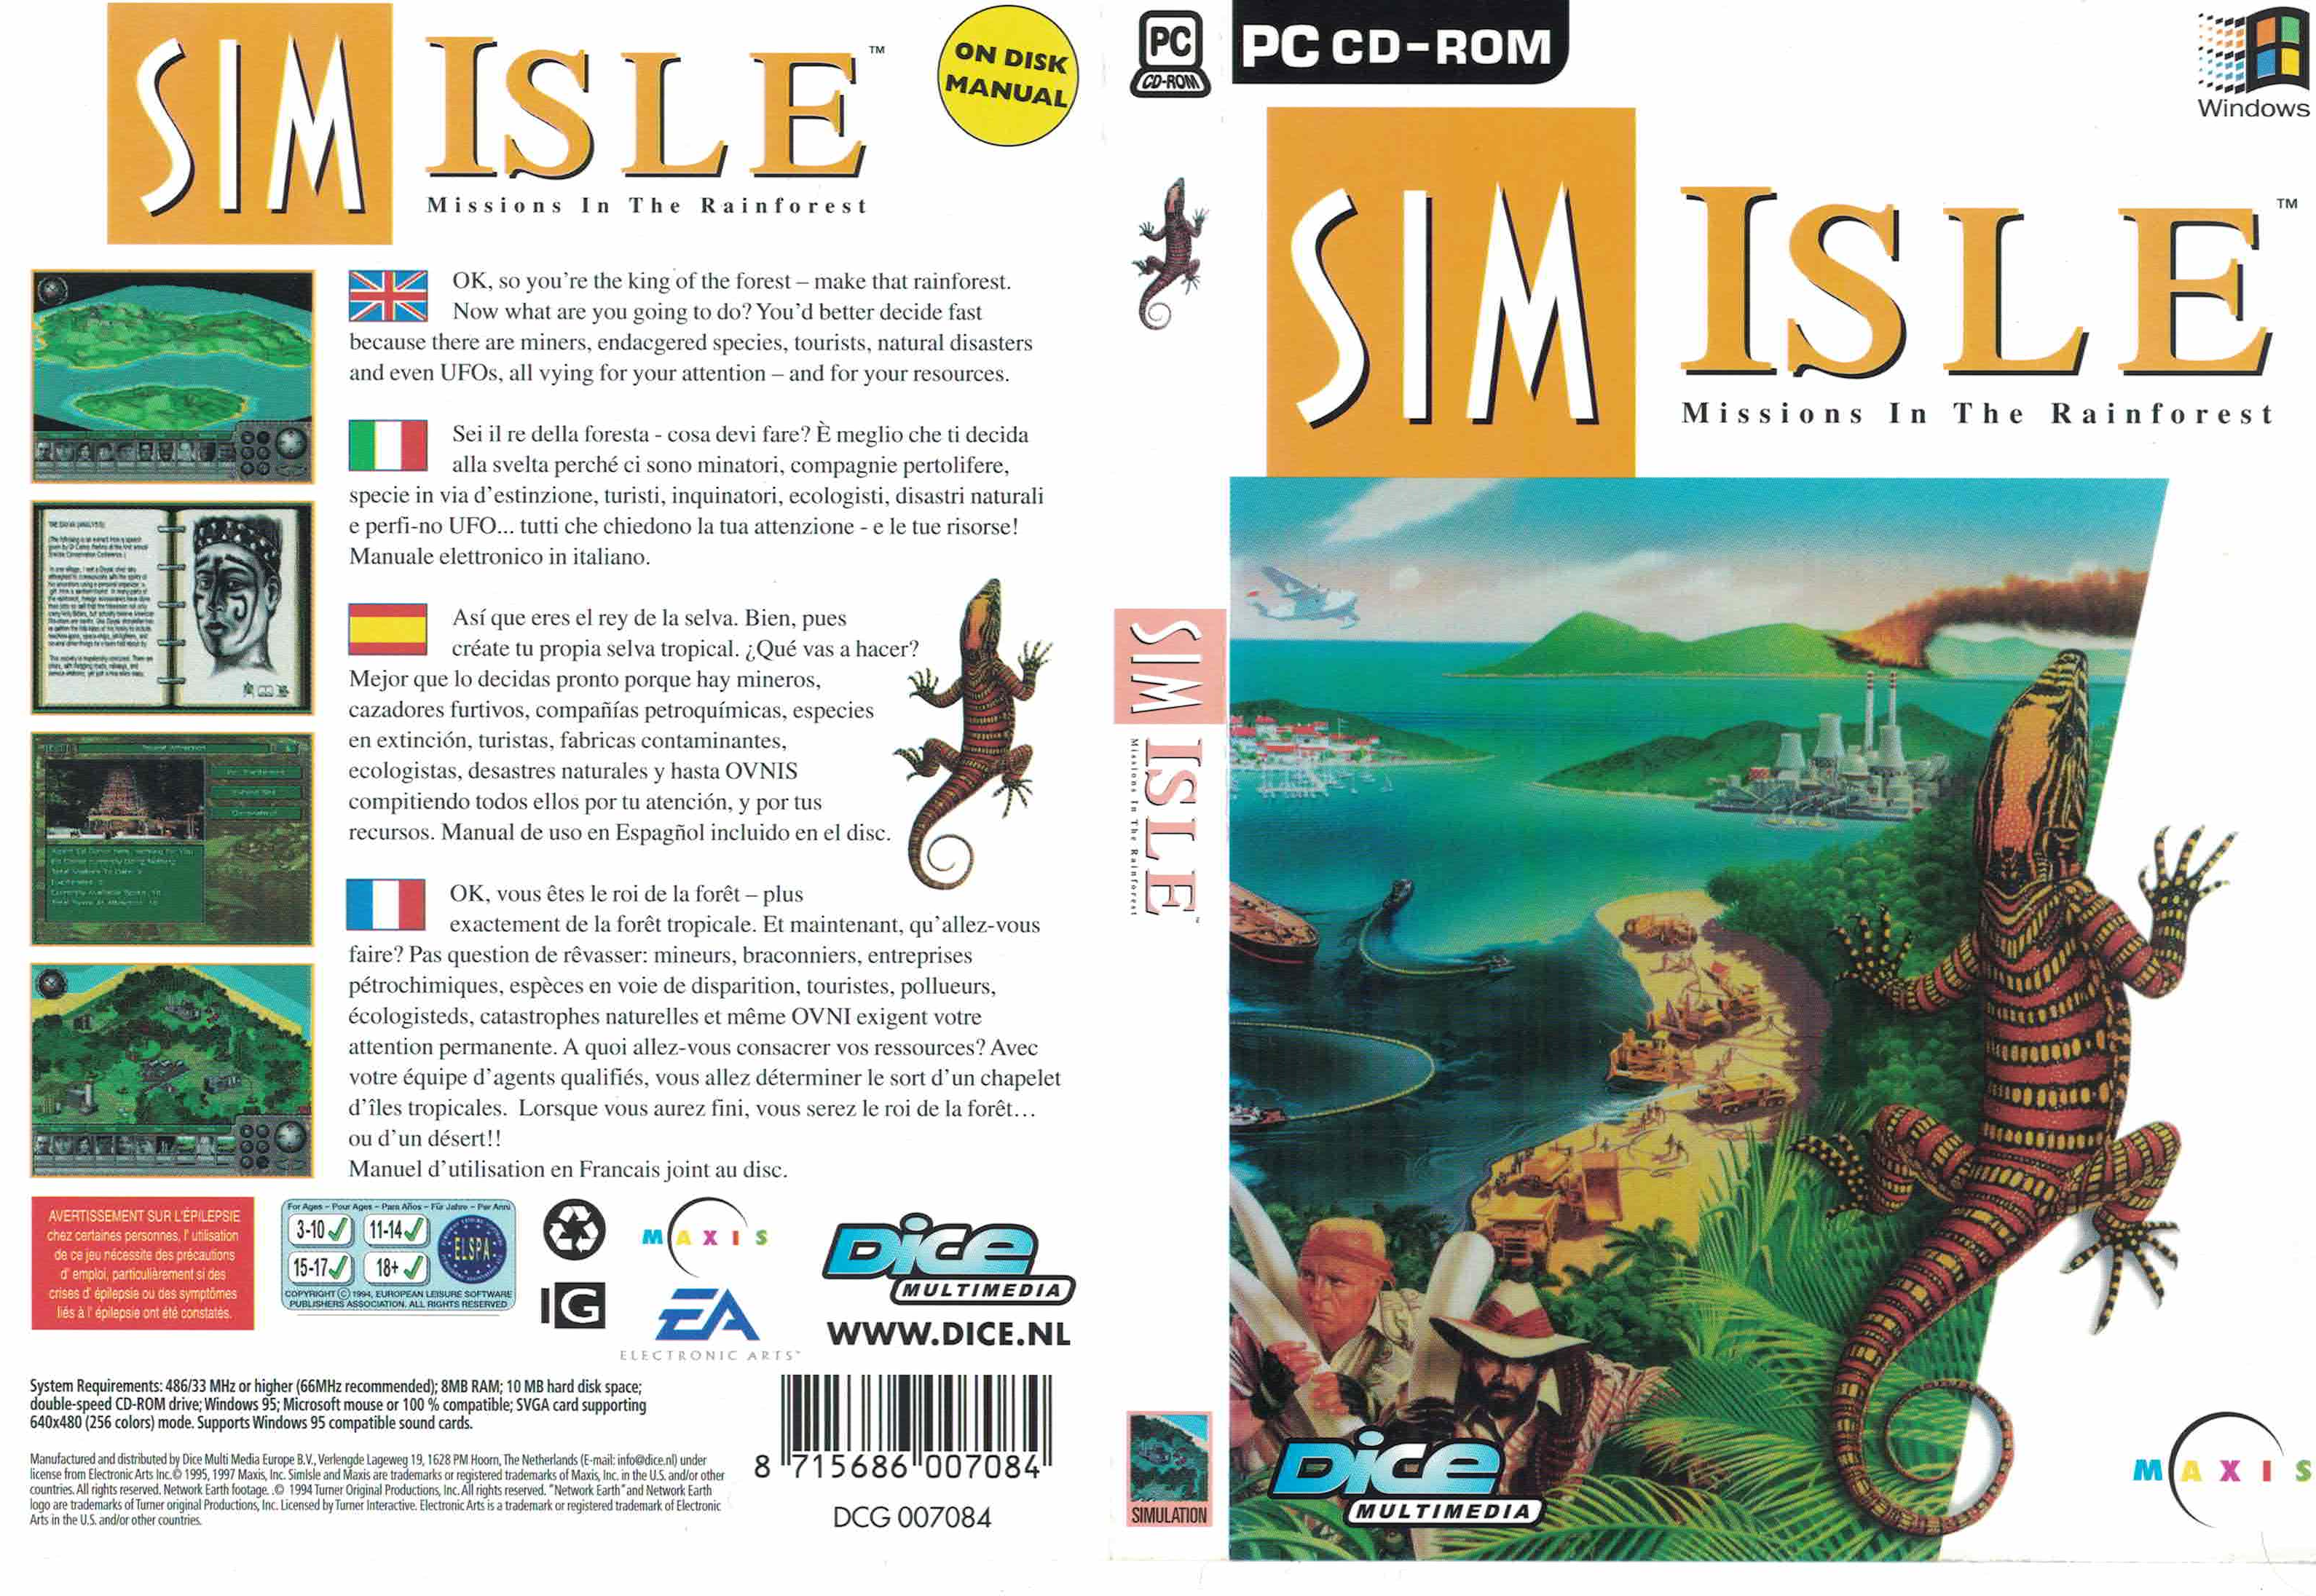 SimIsle: Missions in the Rainforest (PC Game - Windows 9x